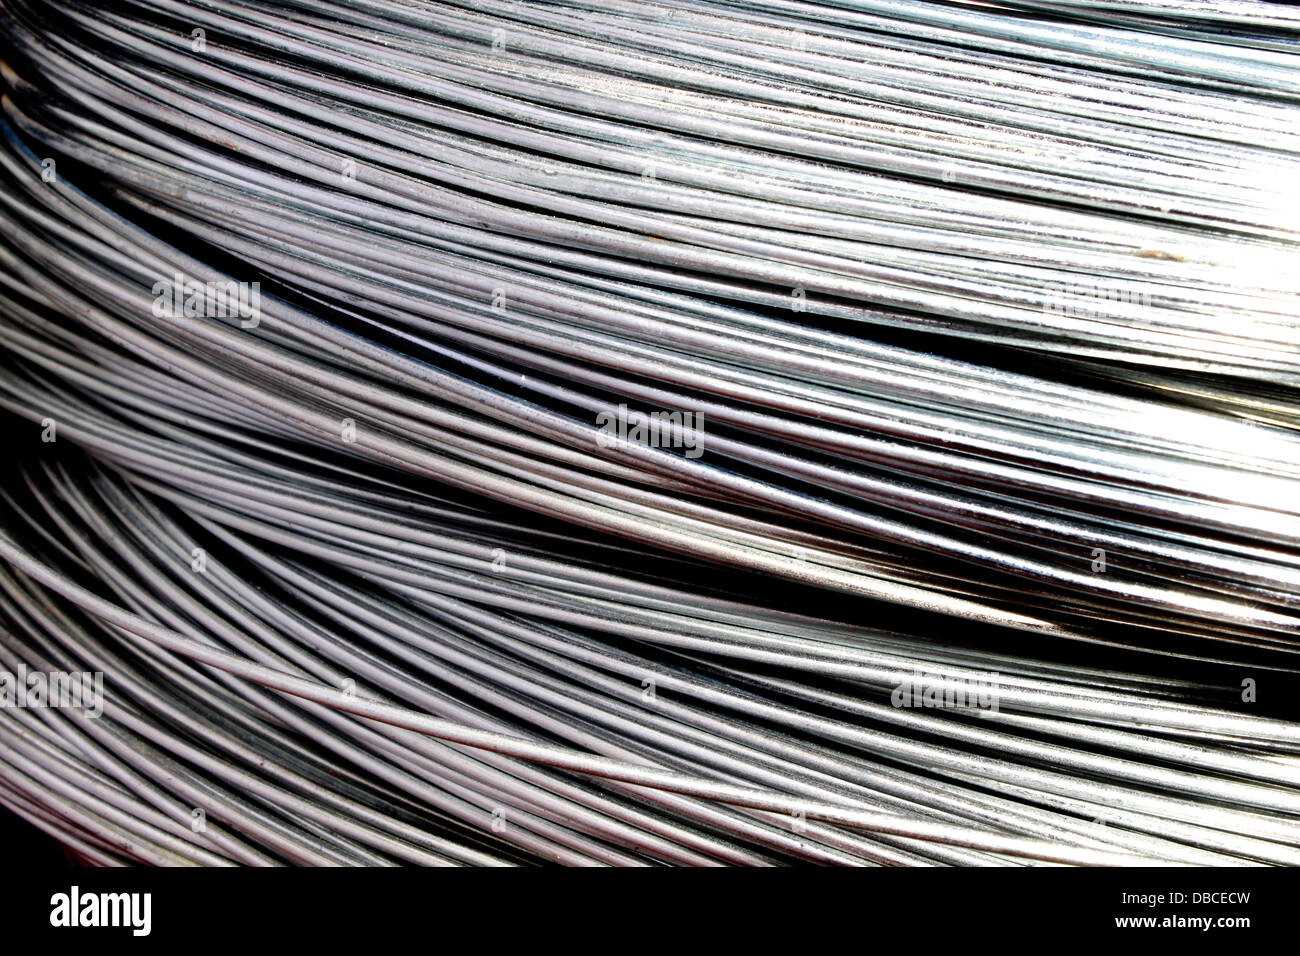 Close up shots of galvanized wires - Stock Image